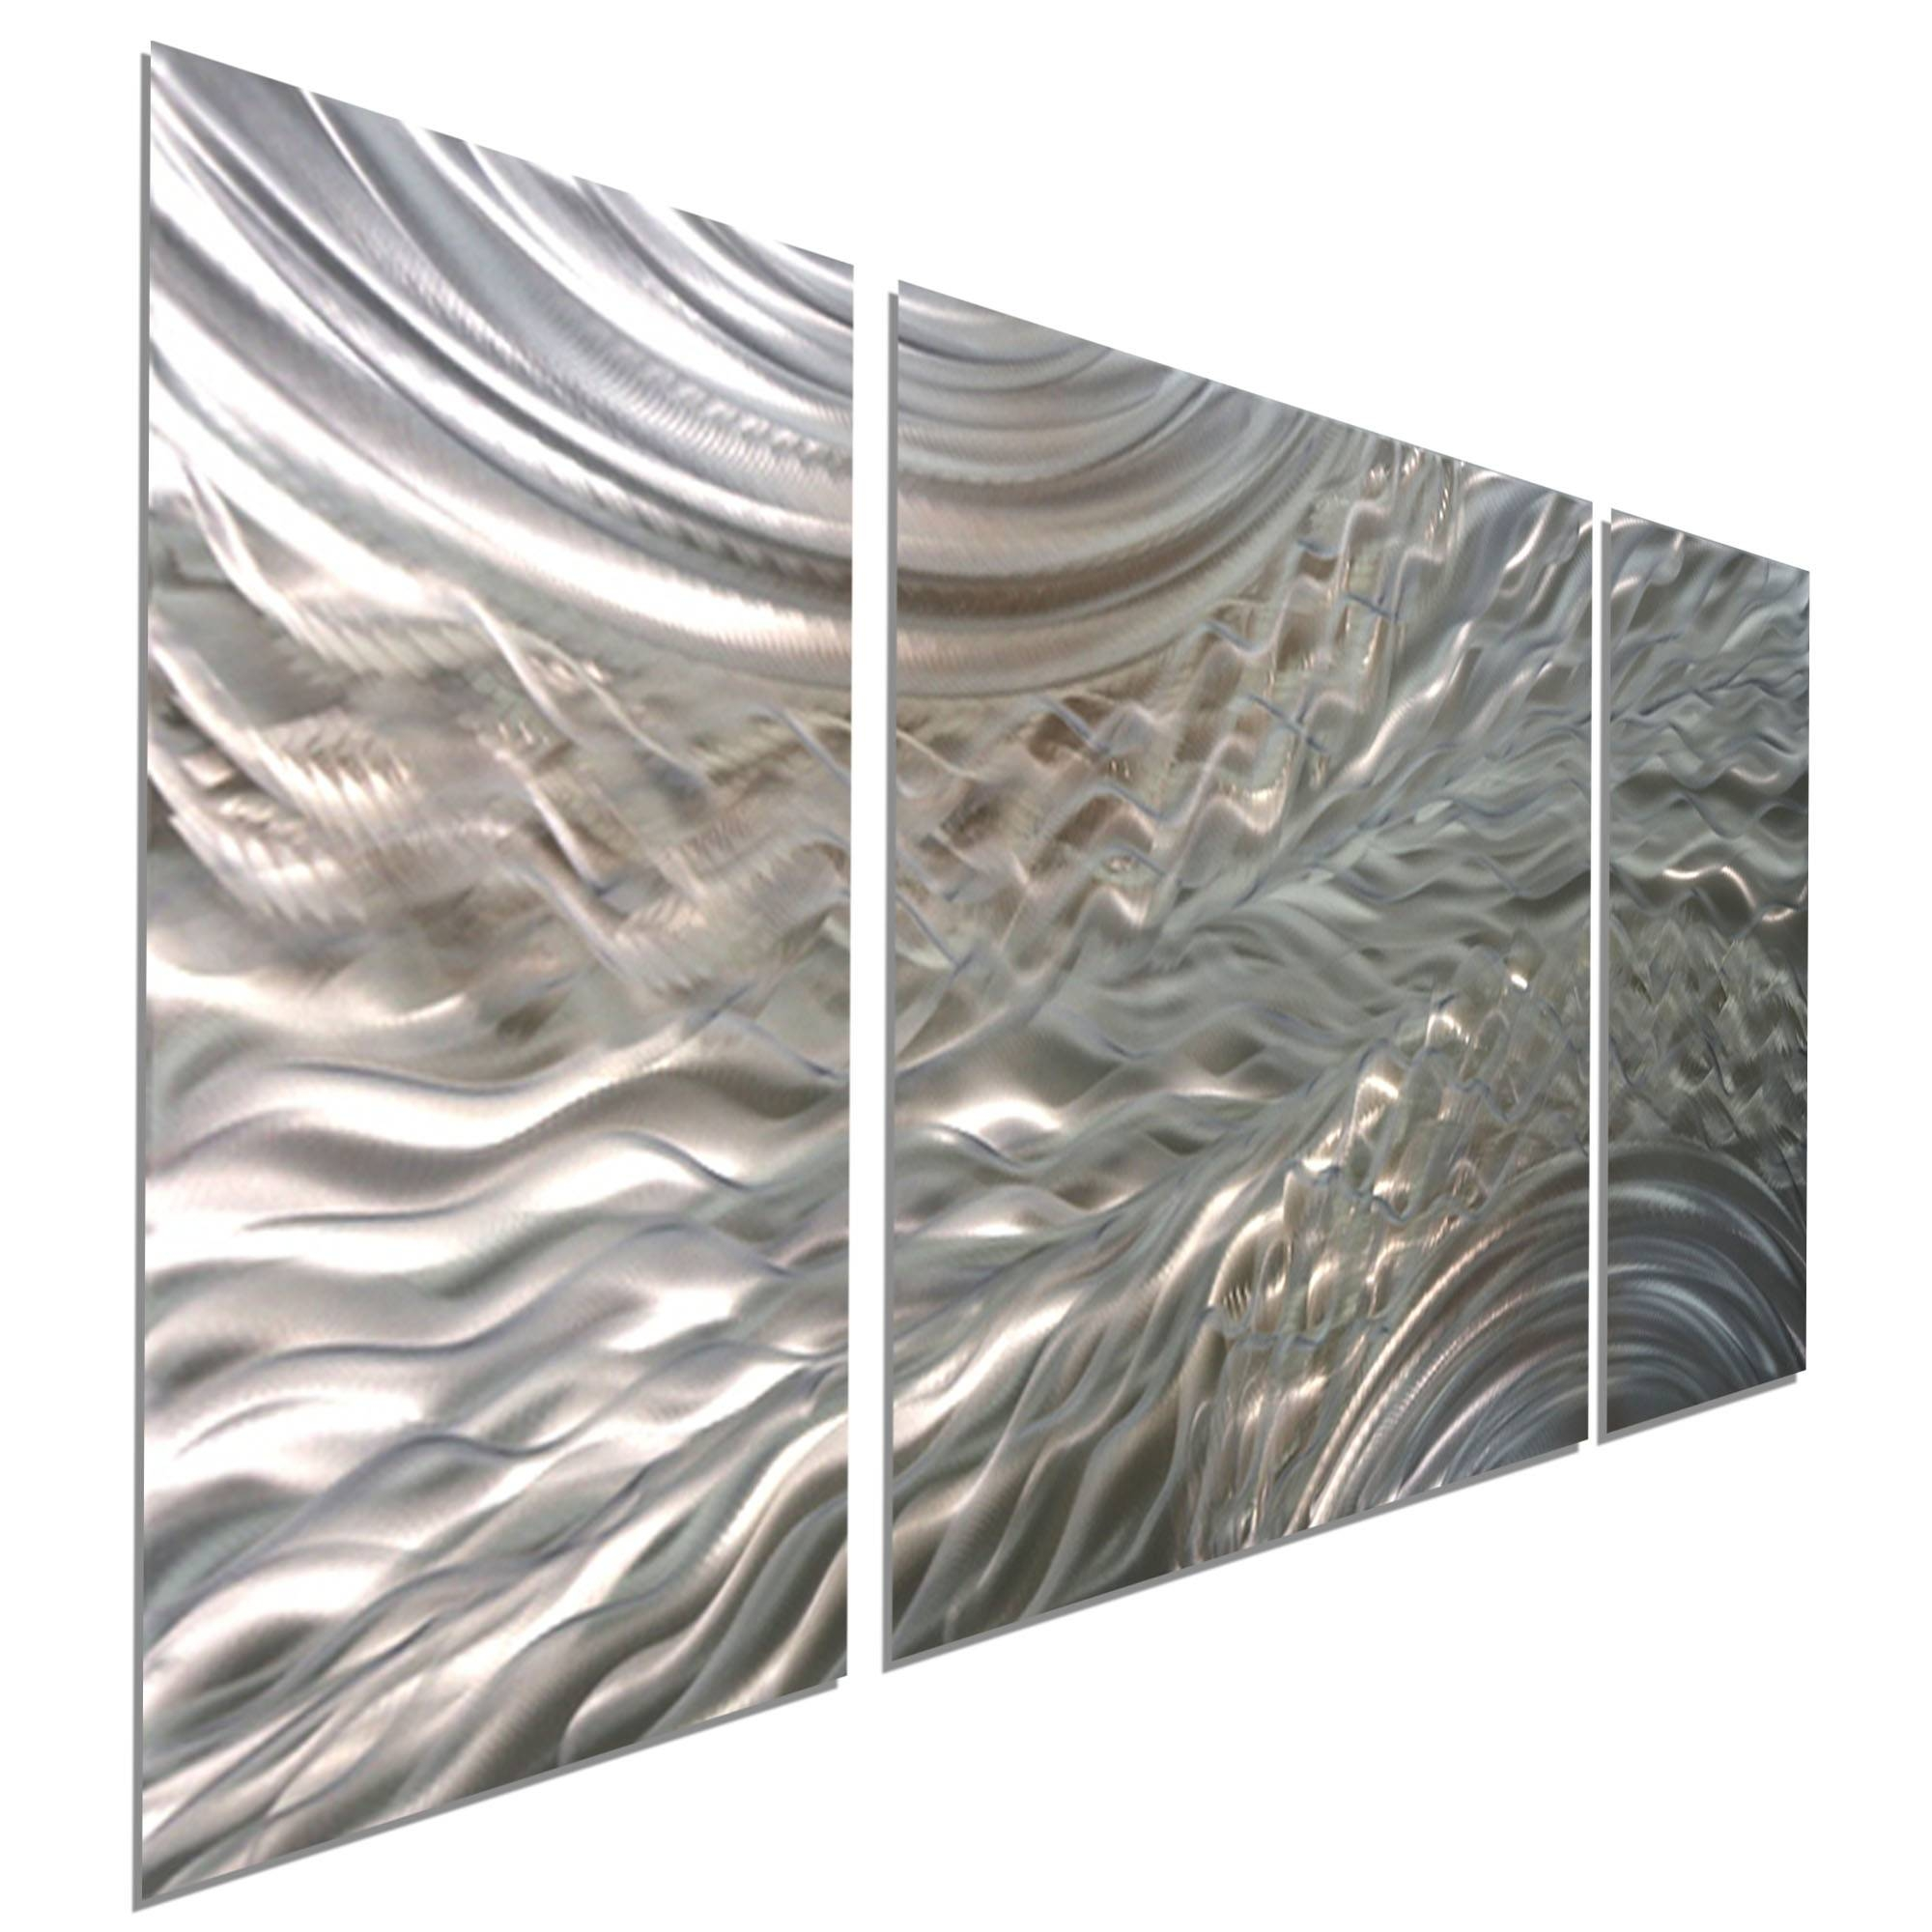 Metal Wall Art Handmade Panel Sculptures Regarding Most Recently